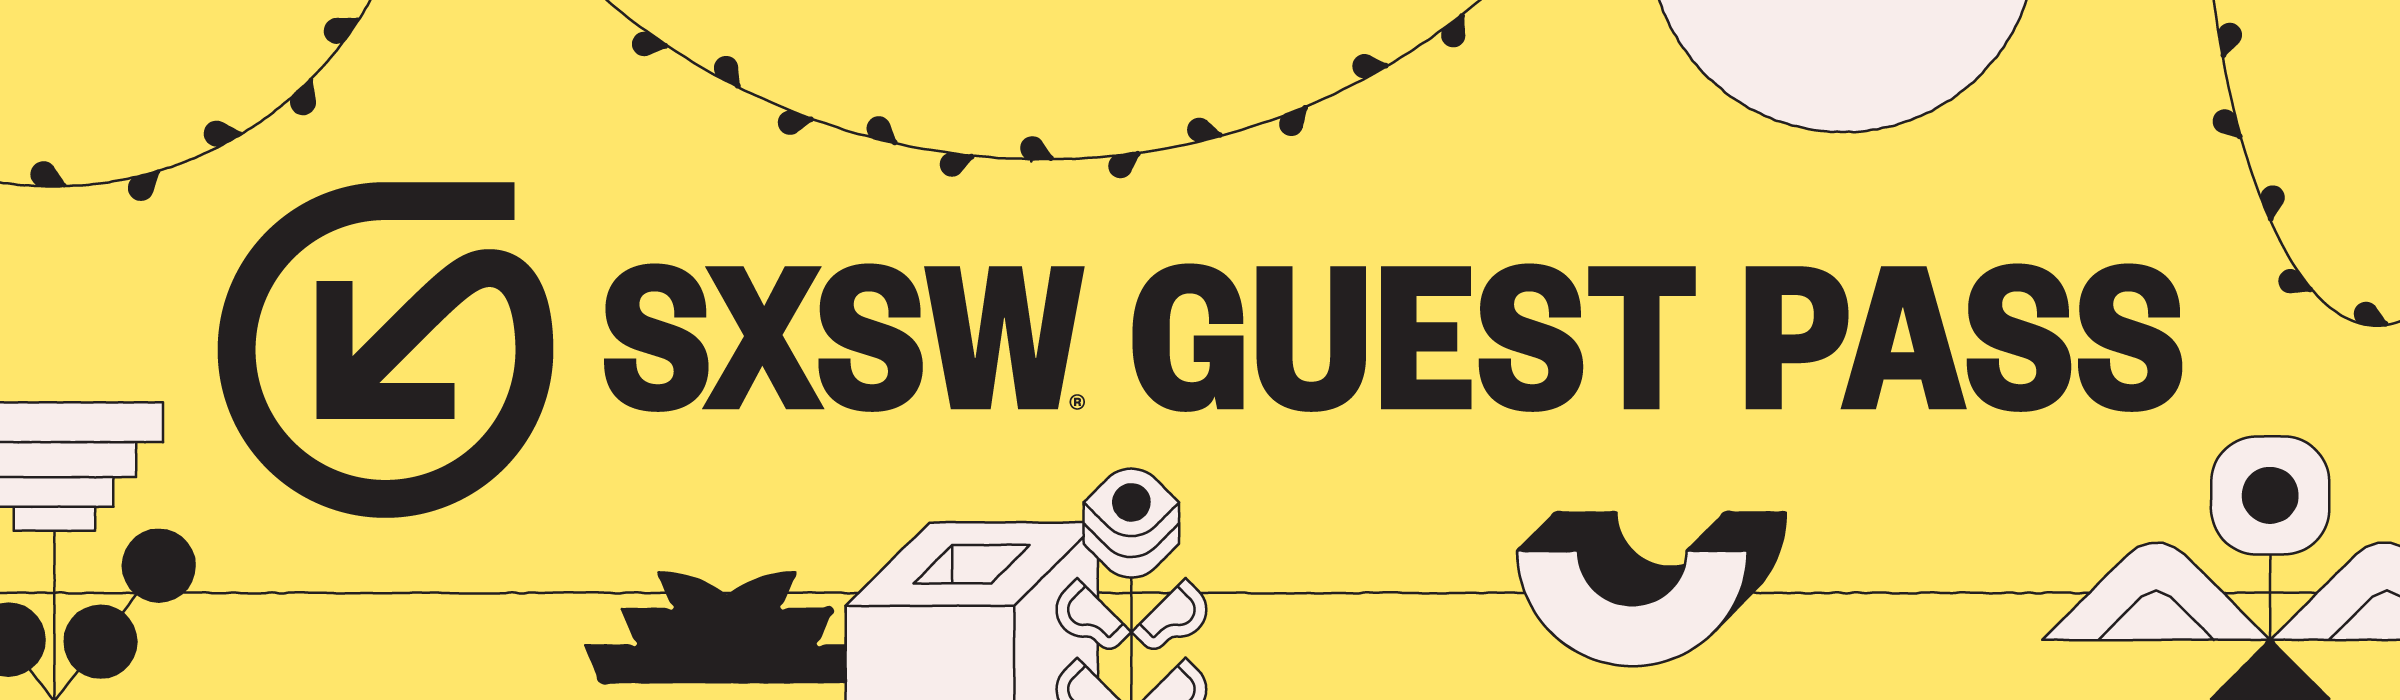 SXSW Guest Pass is Back for 2019 - Rock Rage Radio